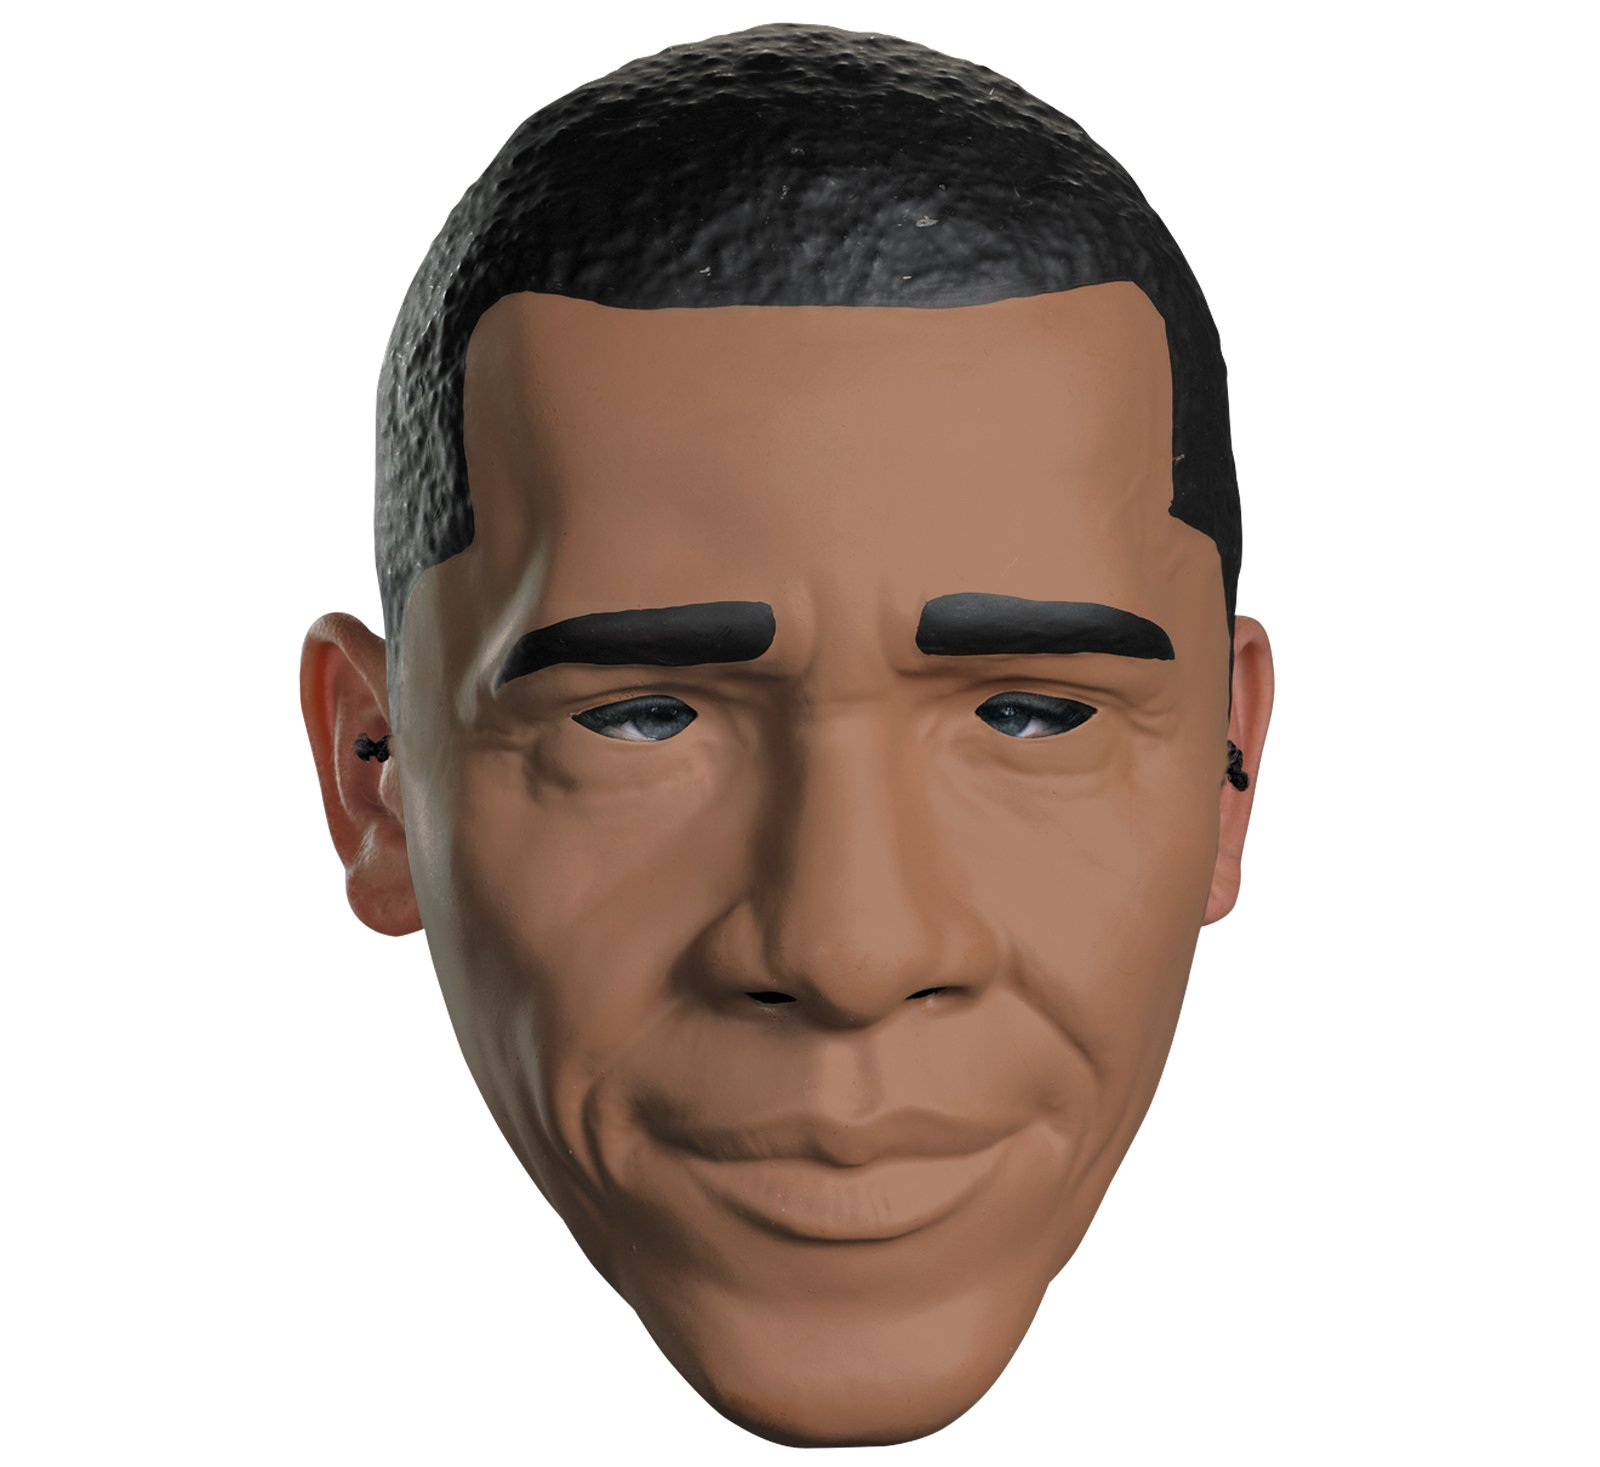 Barack Obama Adult Half Mask